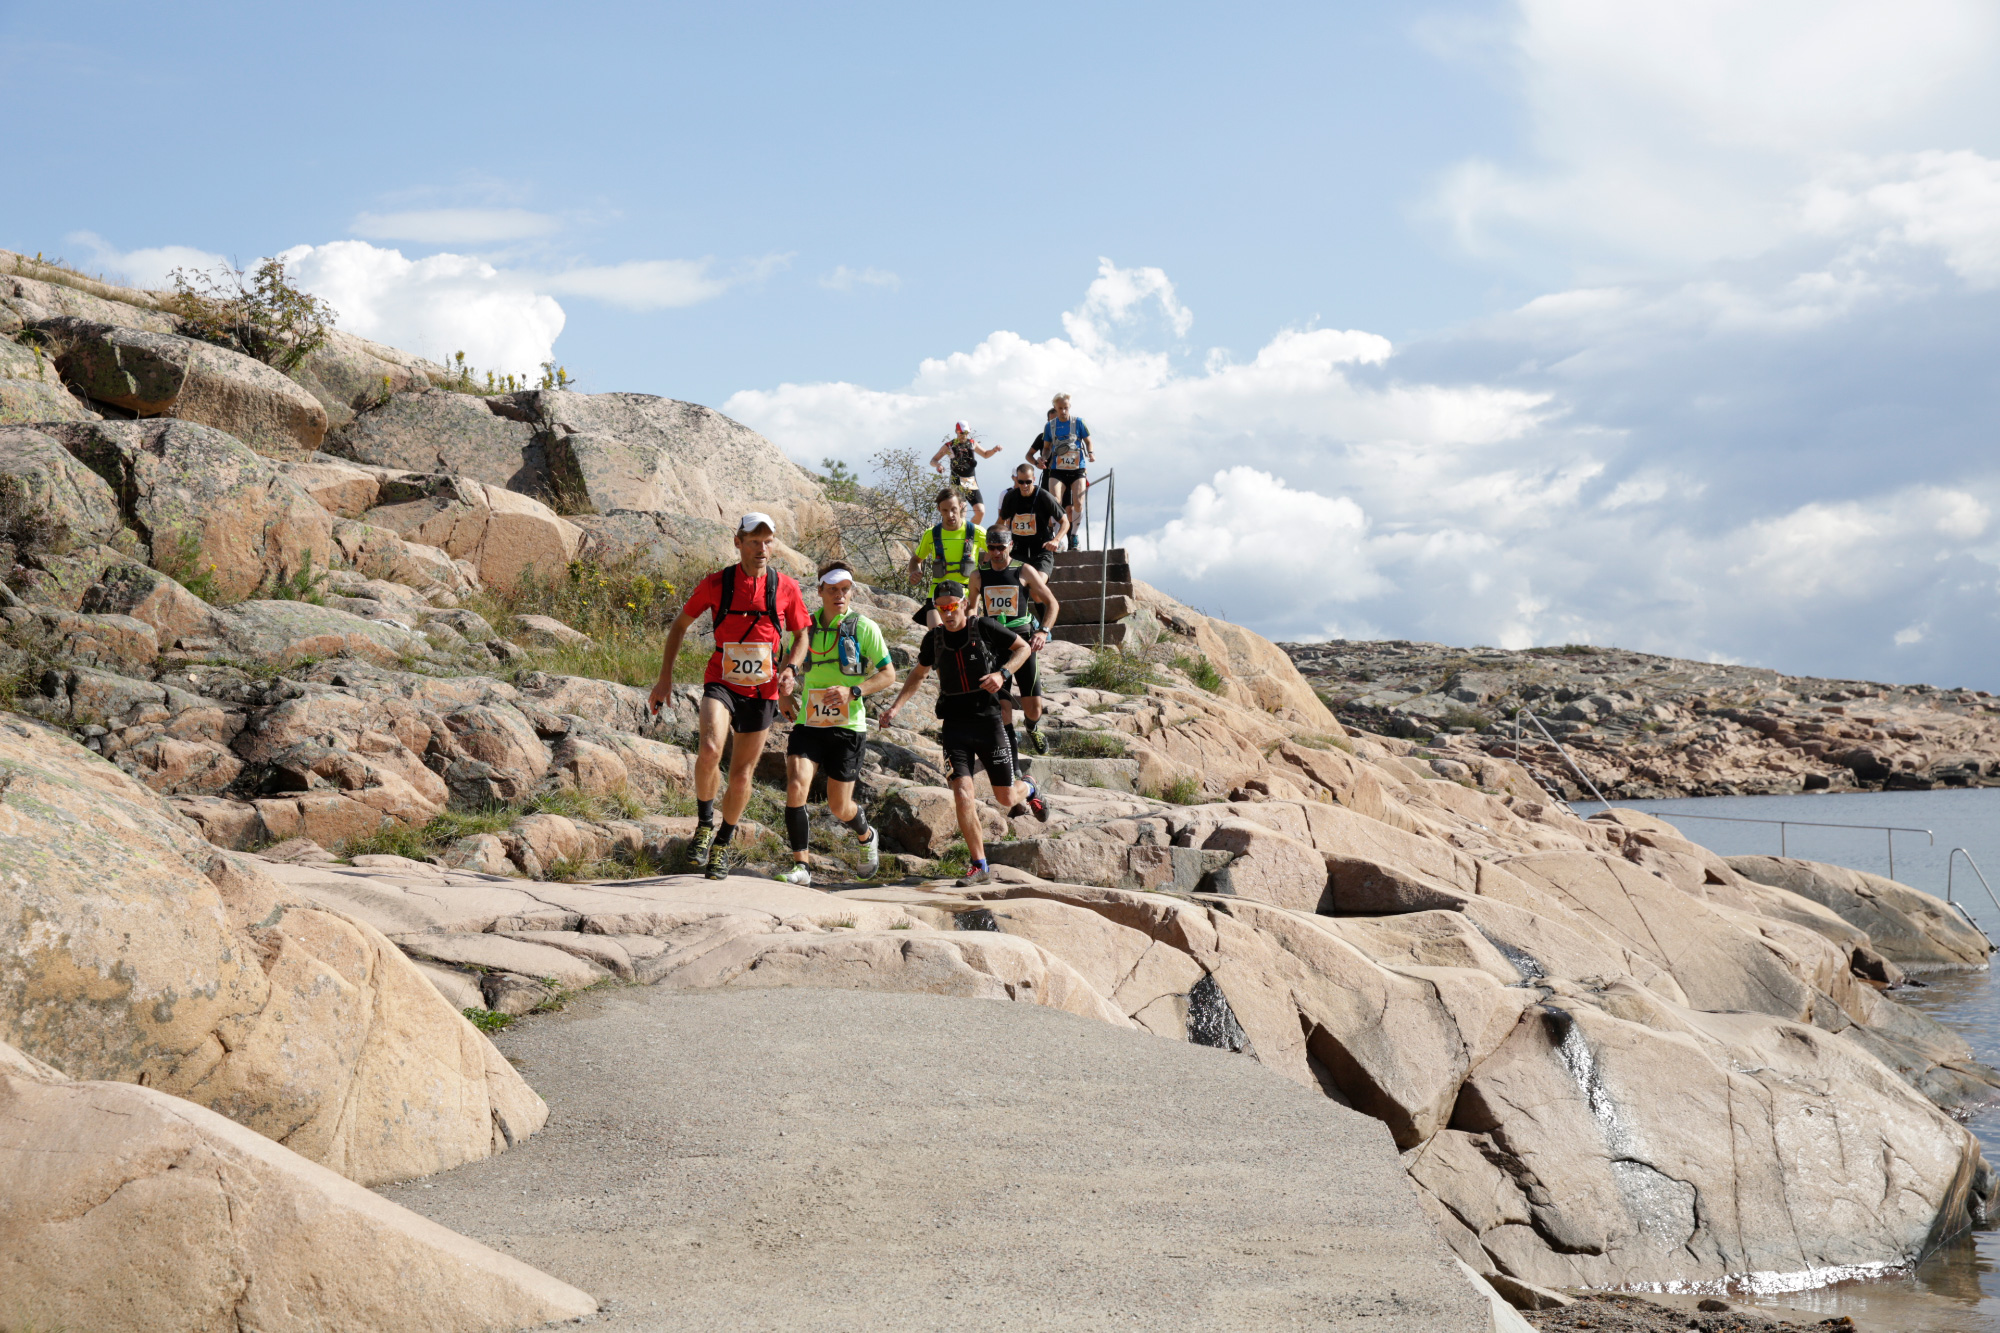 Group of runners descending steps and rocks by the sea on the Icebug Xperience